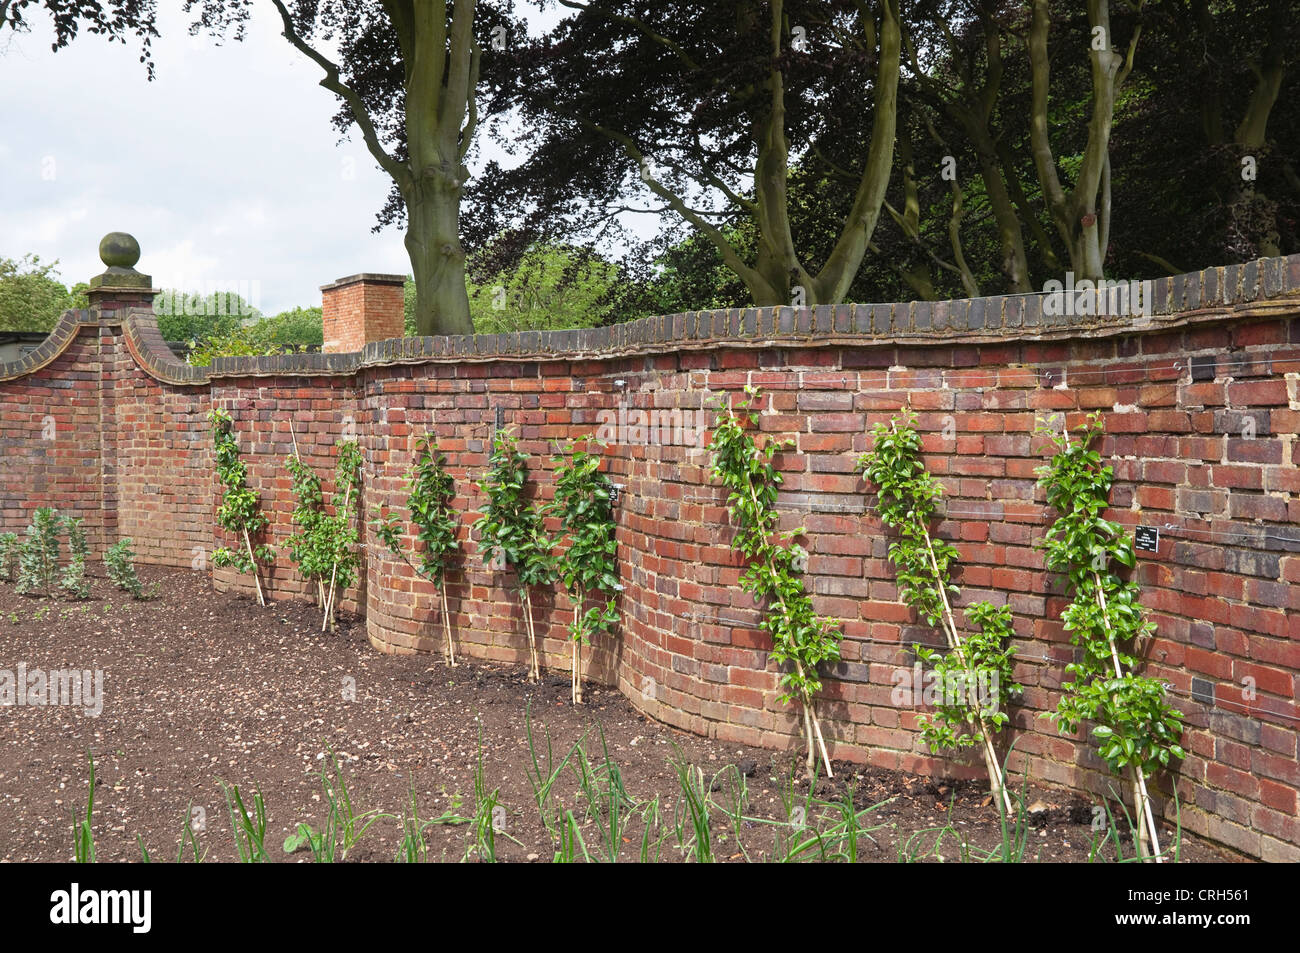 A crinkle crankle / serpentine wall, with cordon / espalier fruit trees growing against the brick wall. - Stock Image